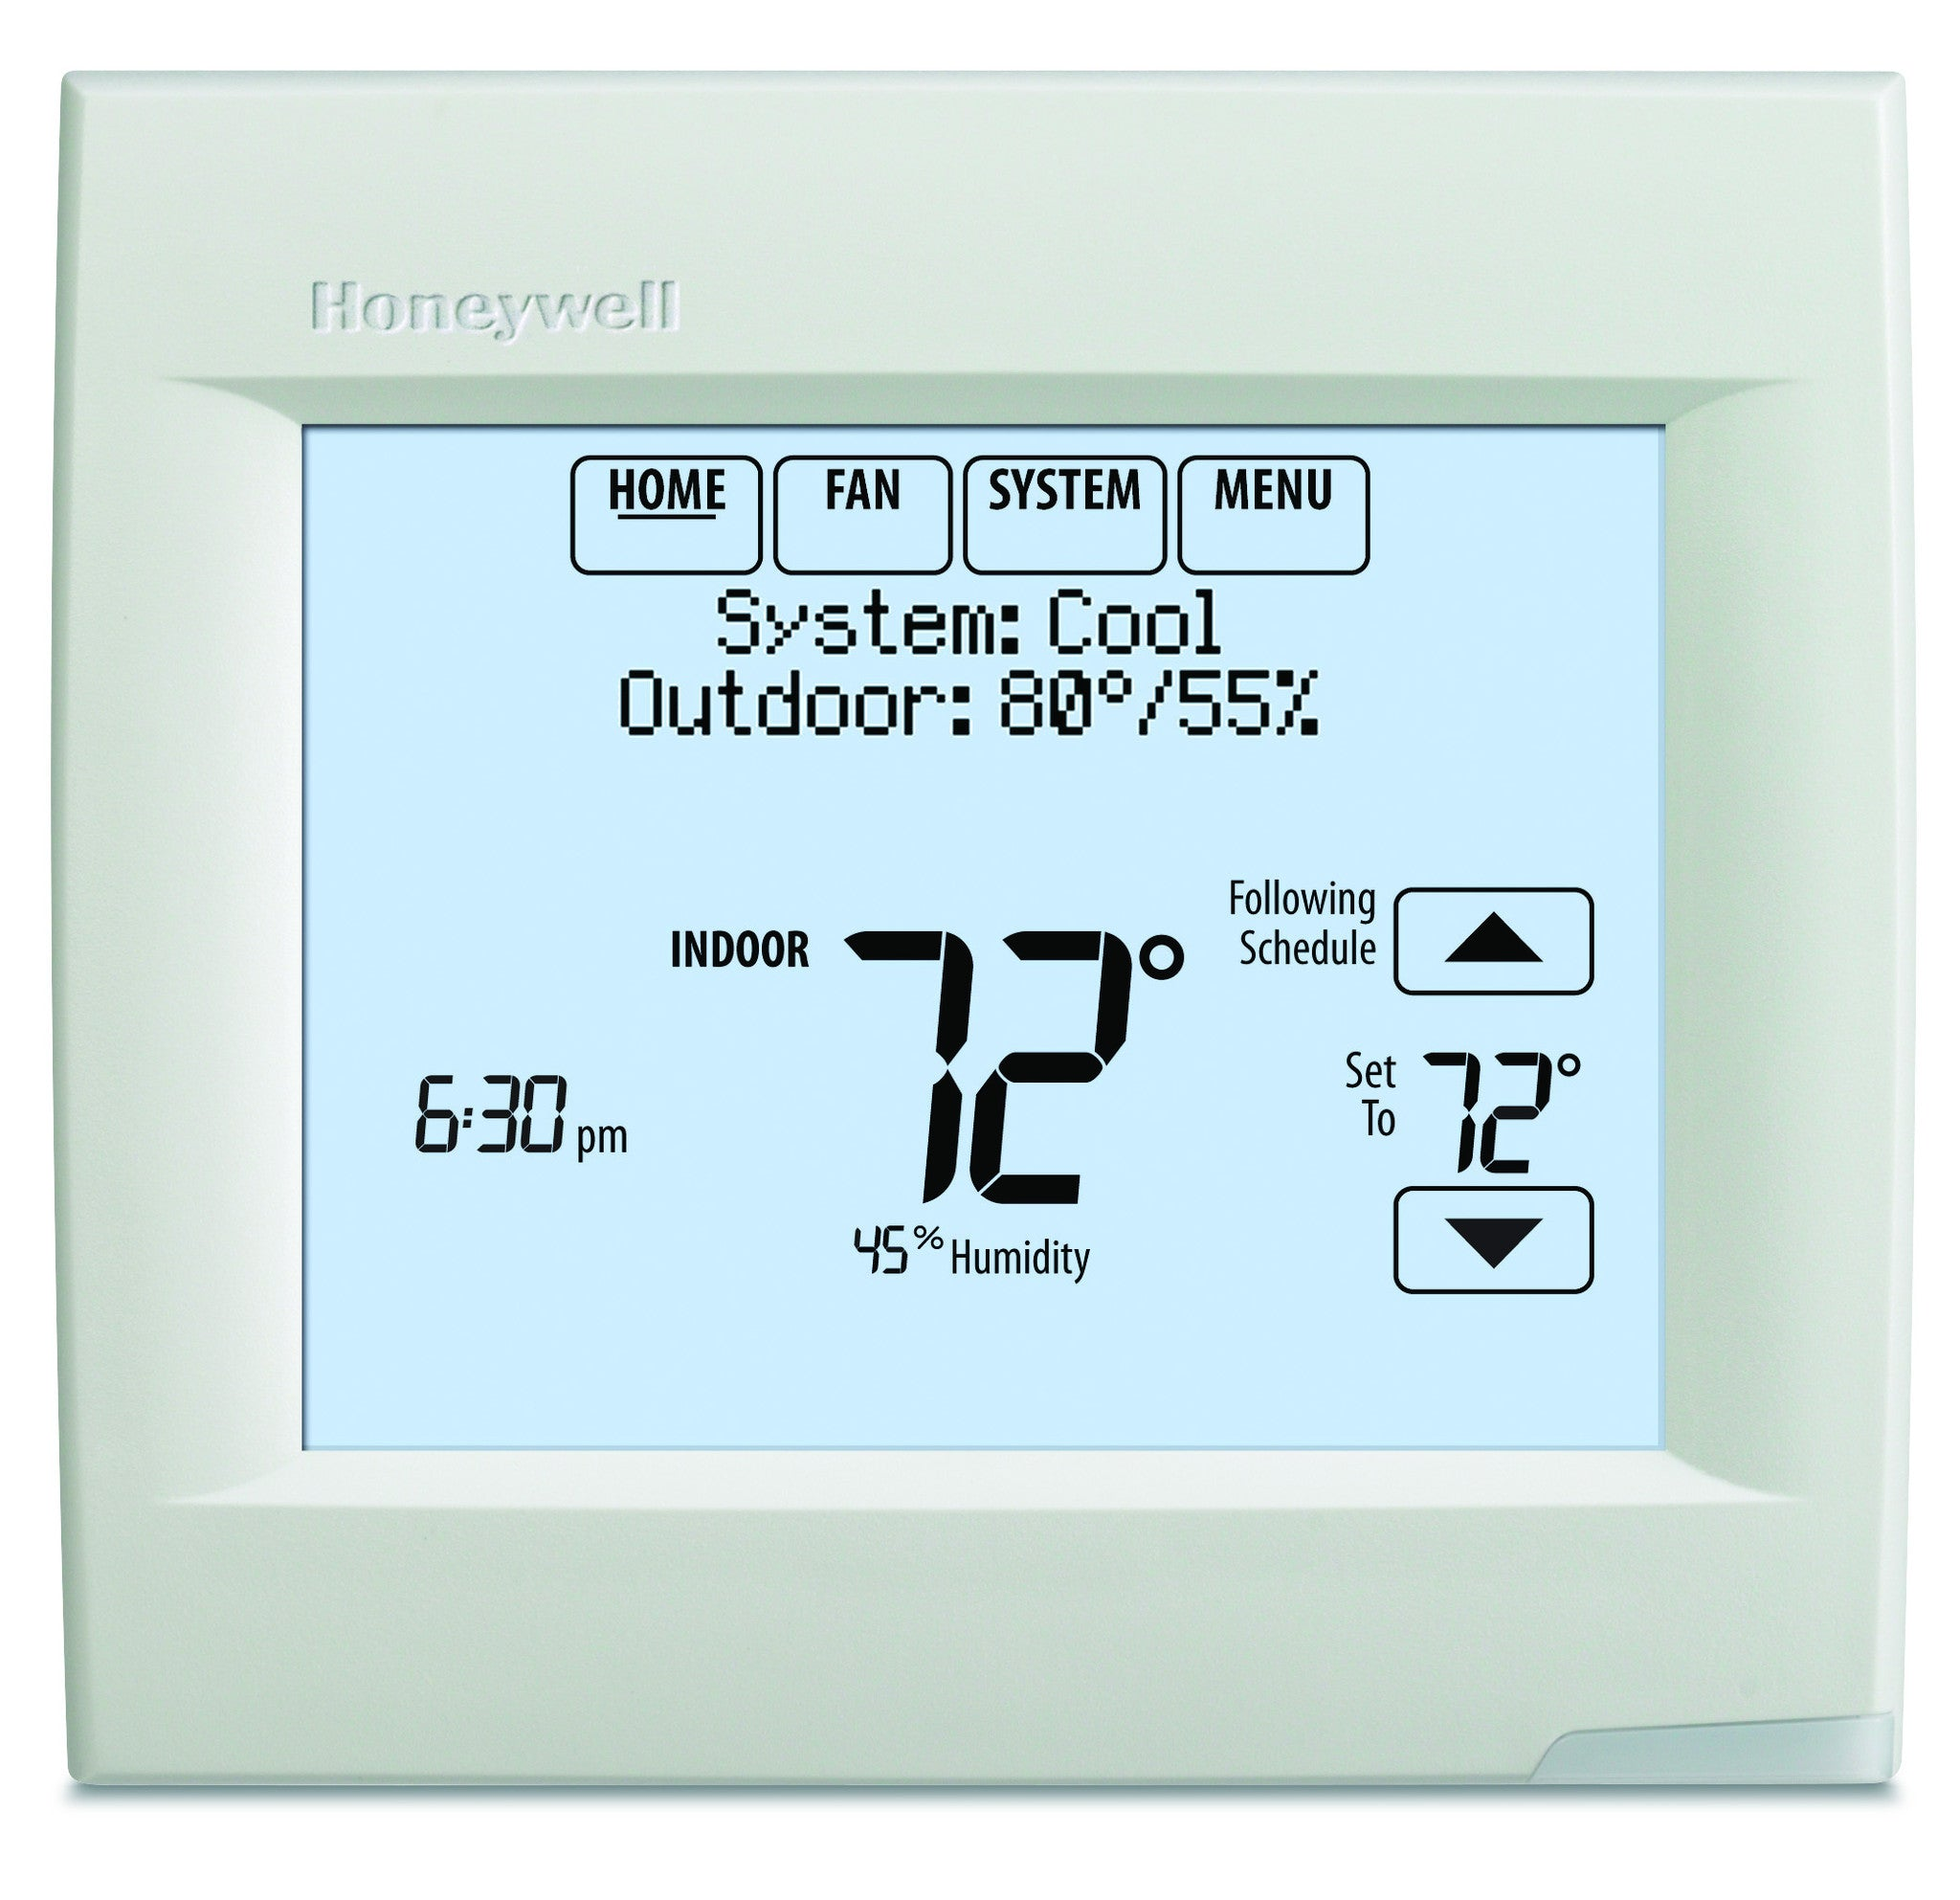 Honeywell TH8320R1003  VisionPRO 8000 w/ RedLINK Technology, Programmable, 3H/2C, Touchscreen  Thermostat